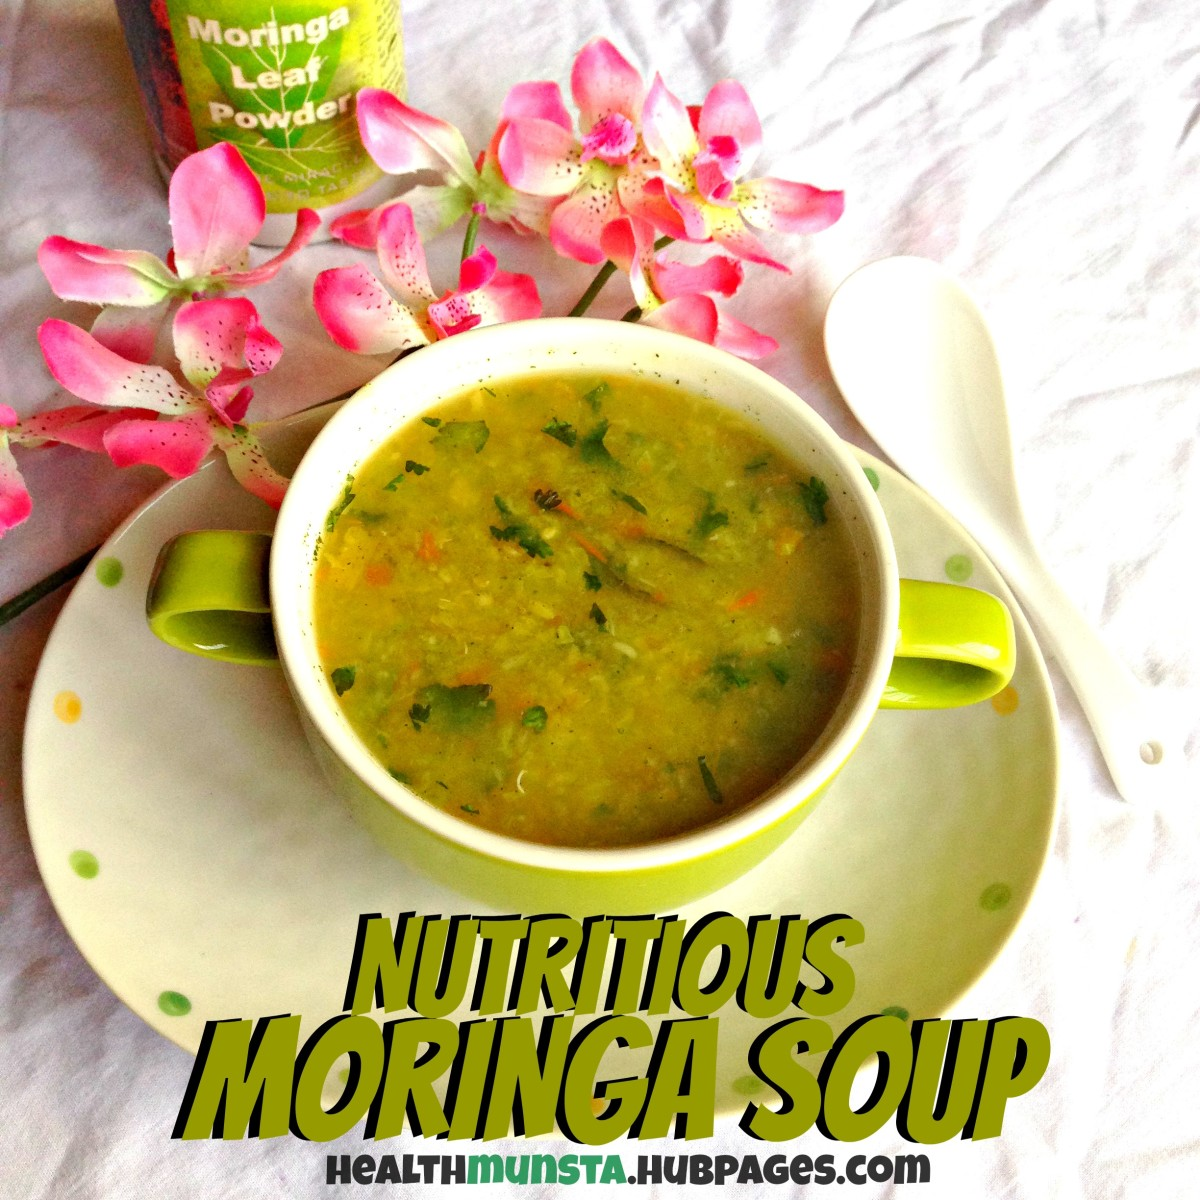 Nutritious Moringa Soup Recipe With A Creamy Lentil Base